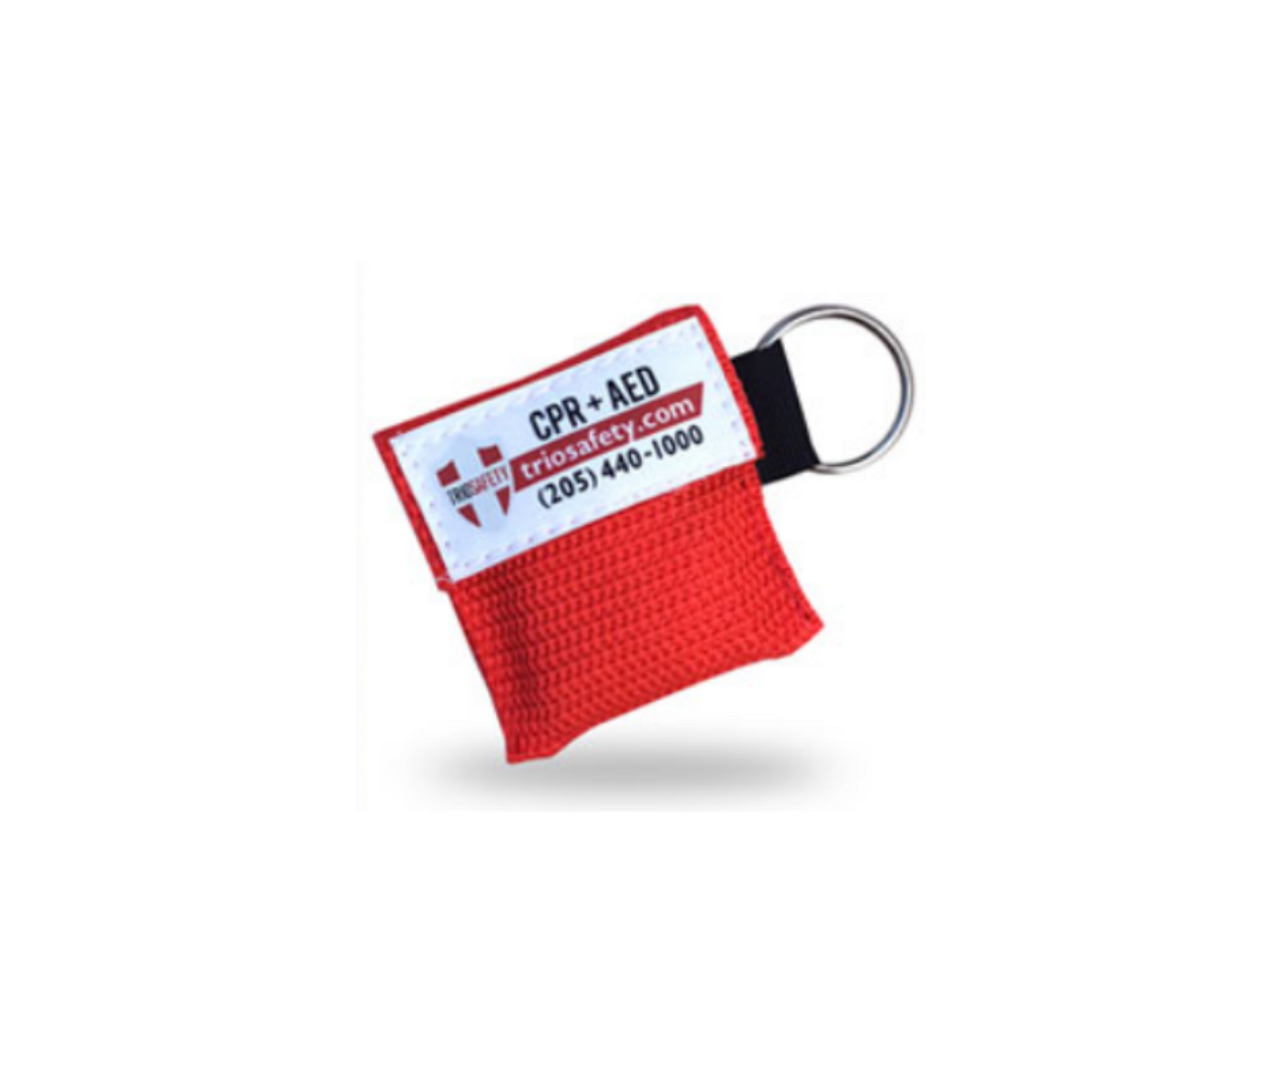 CPR Keychain Masks (branded Trio Safety CPR+AED) - 100 pack